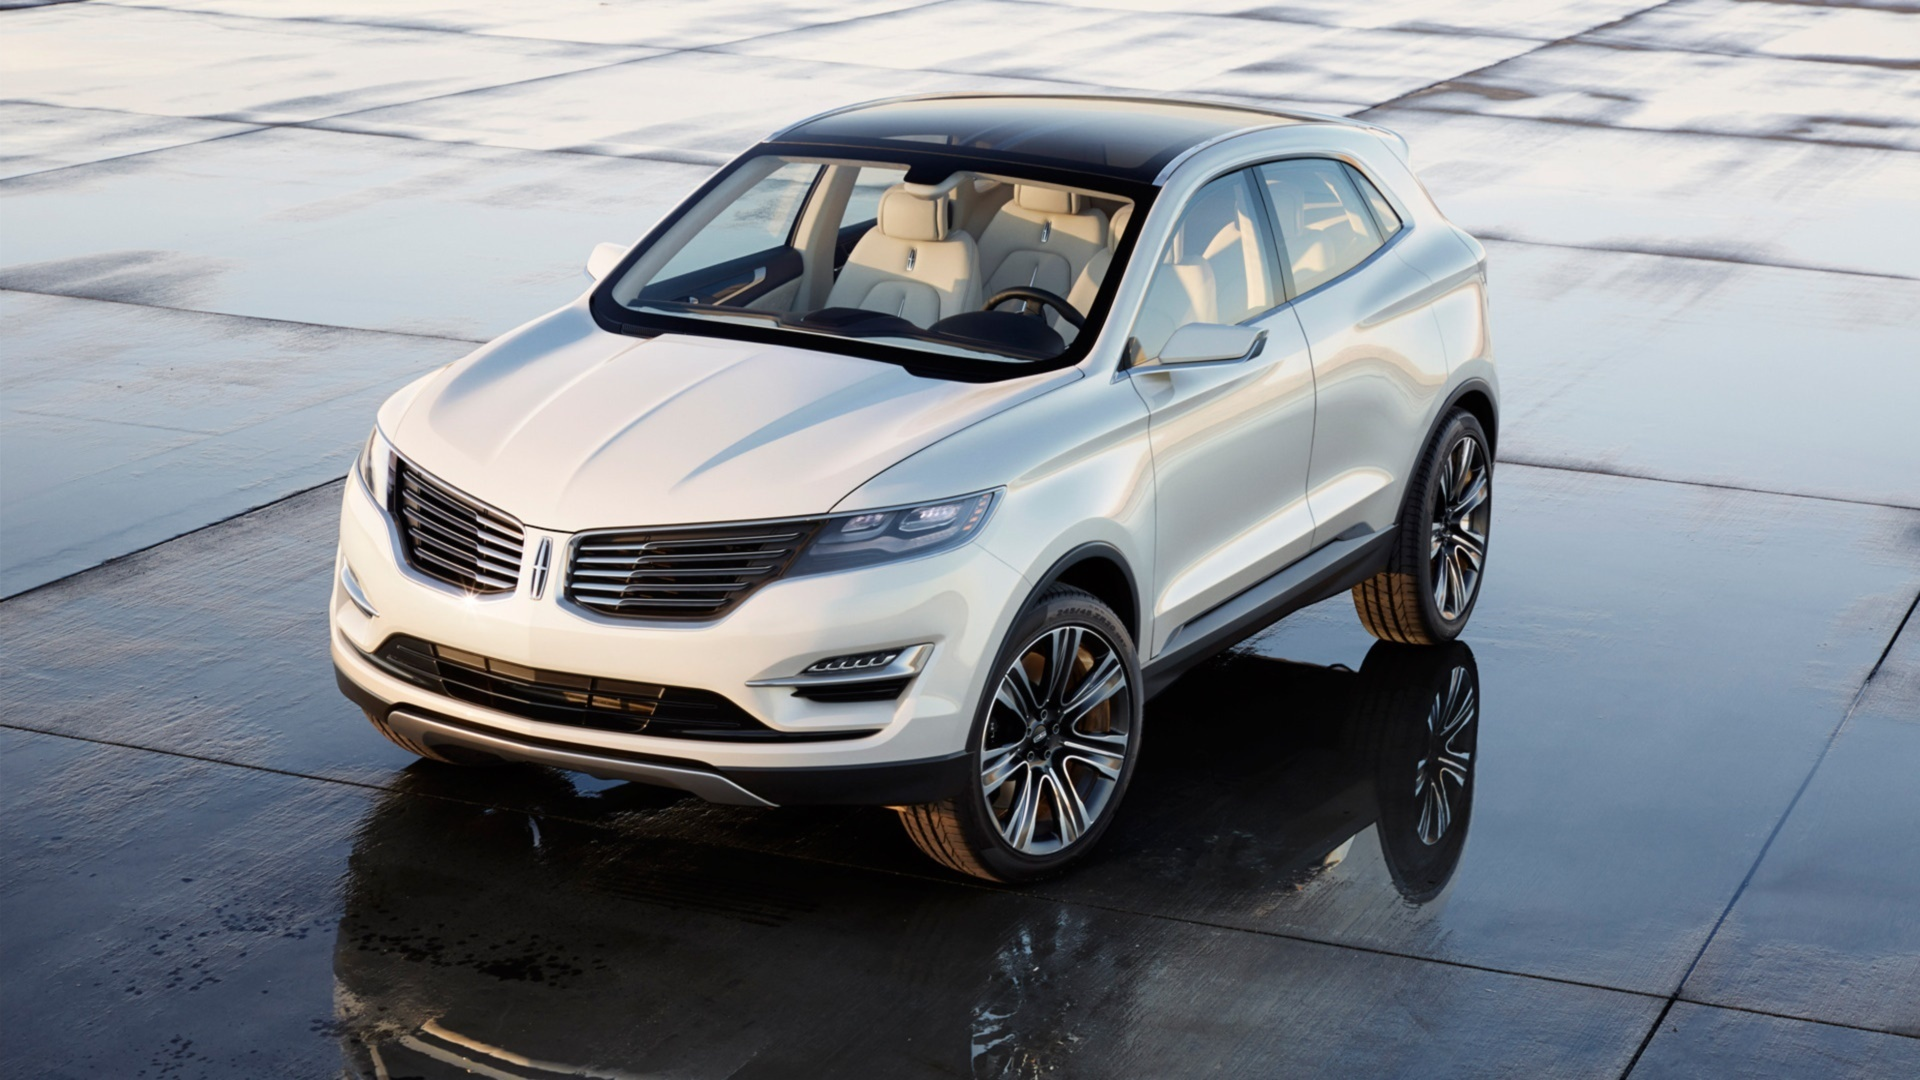 Lincoln Cars Wallpaper Image Picture Background Photo